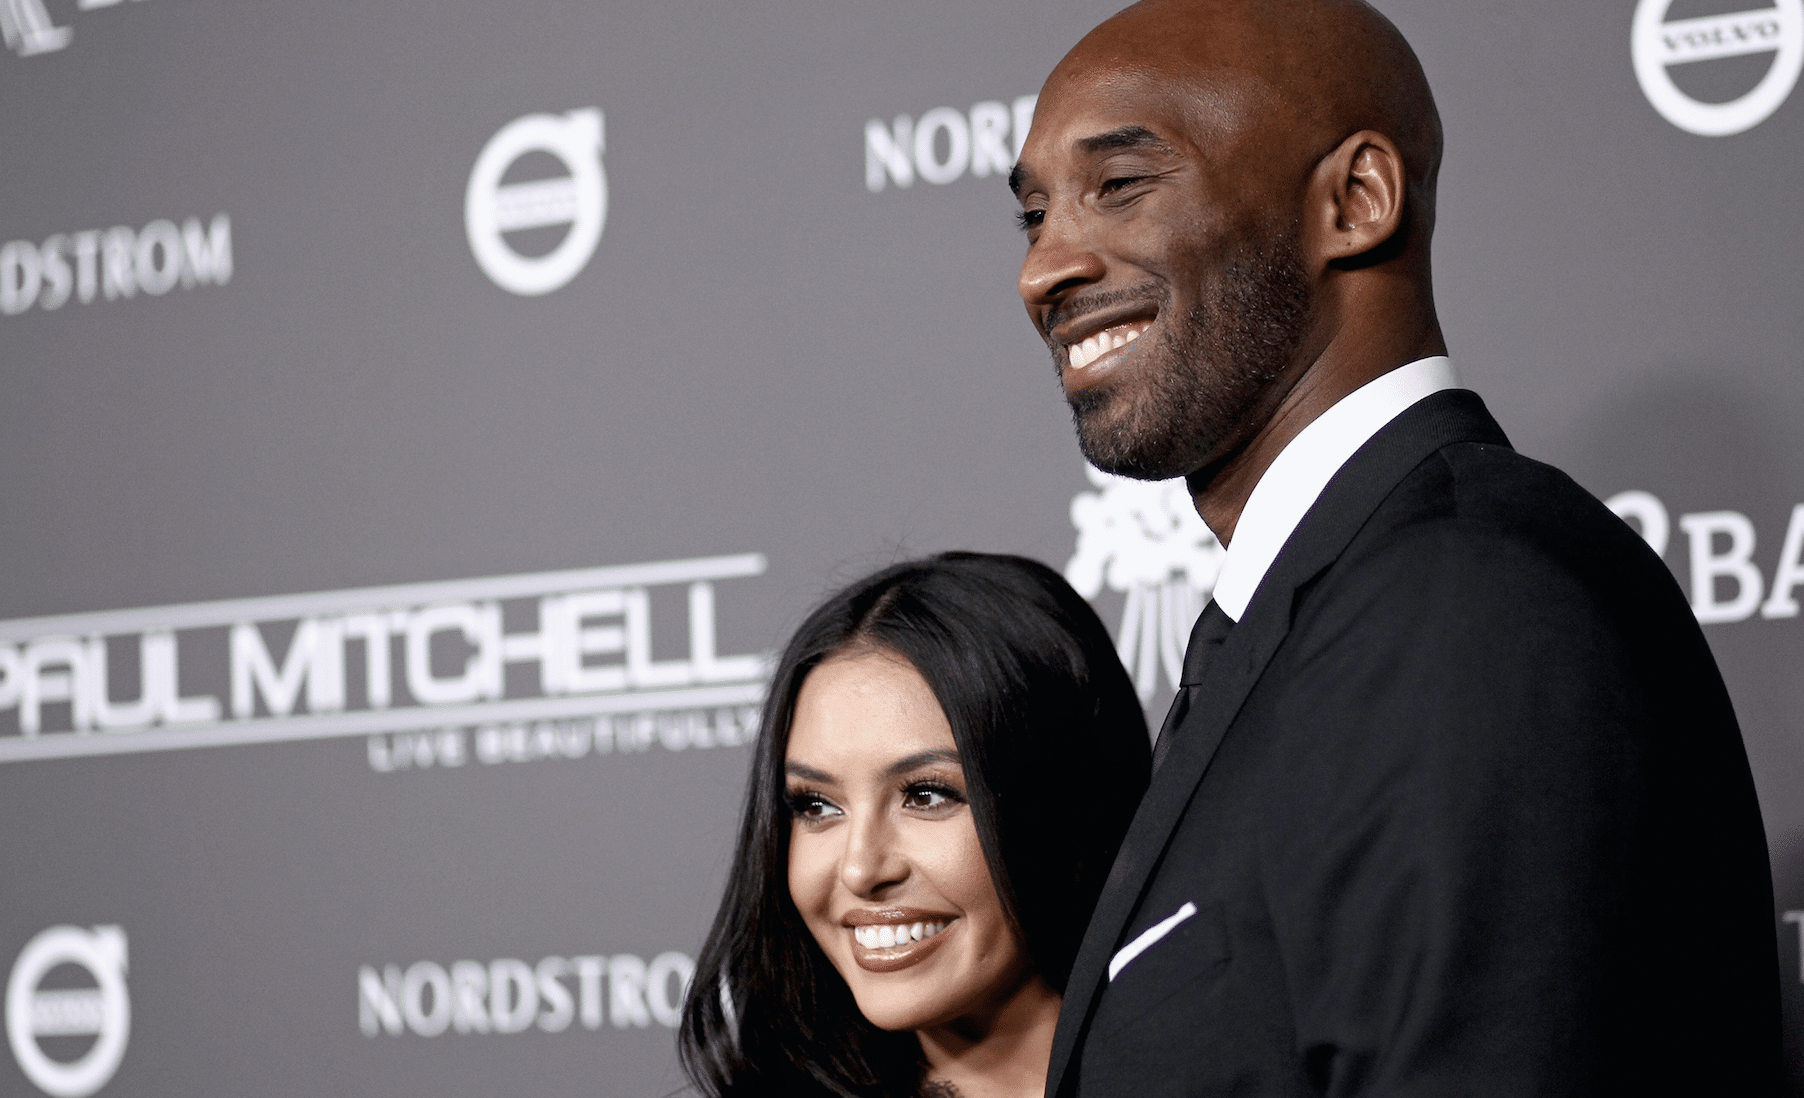 Vanessa Bryant Penned A Heartbreaking Message To Kobe On What Would Have Been His 42nd Birthday